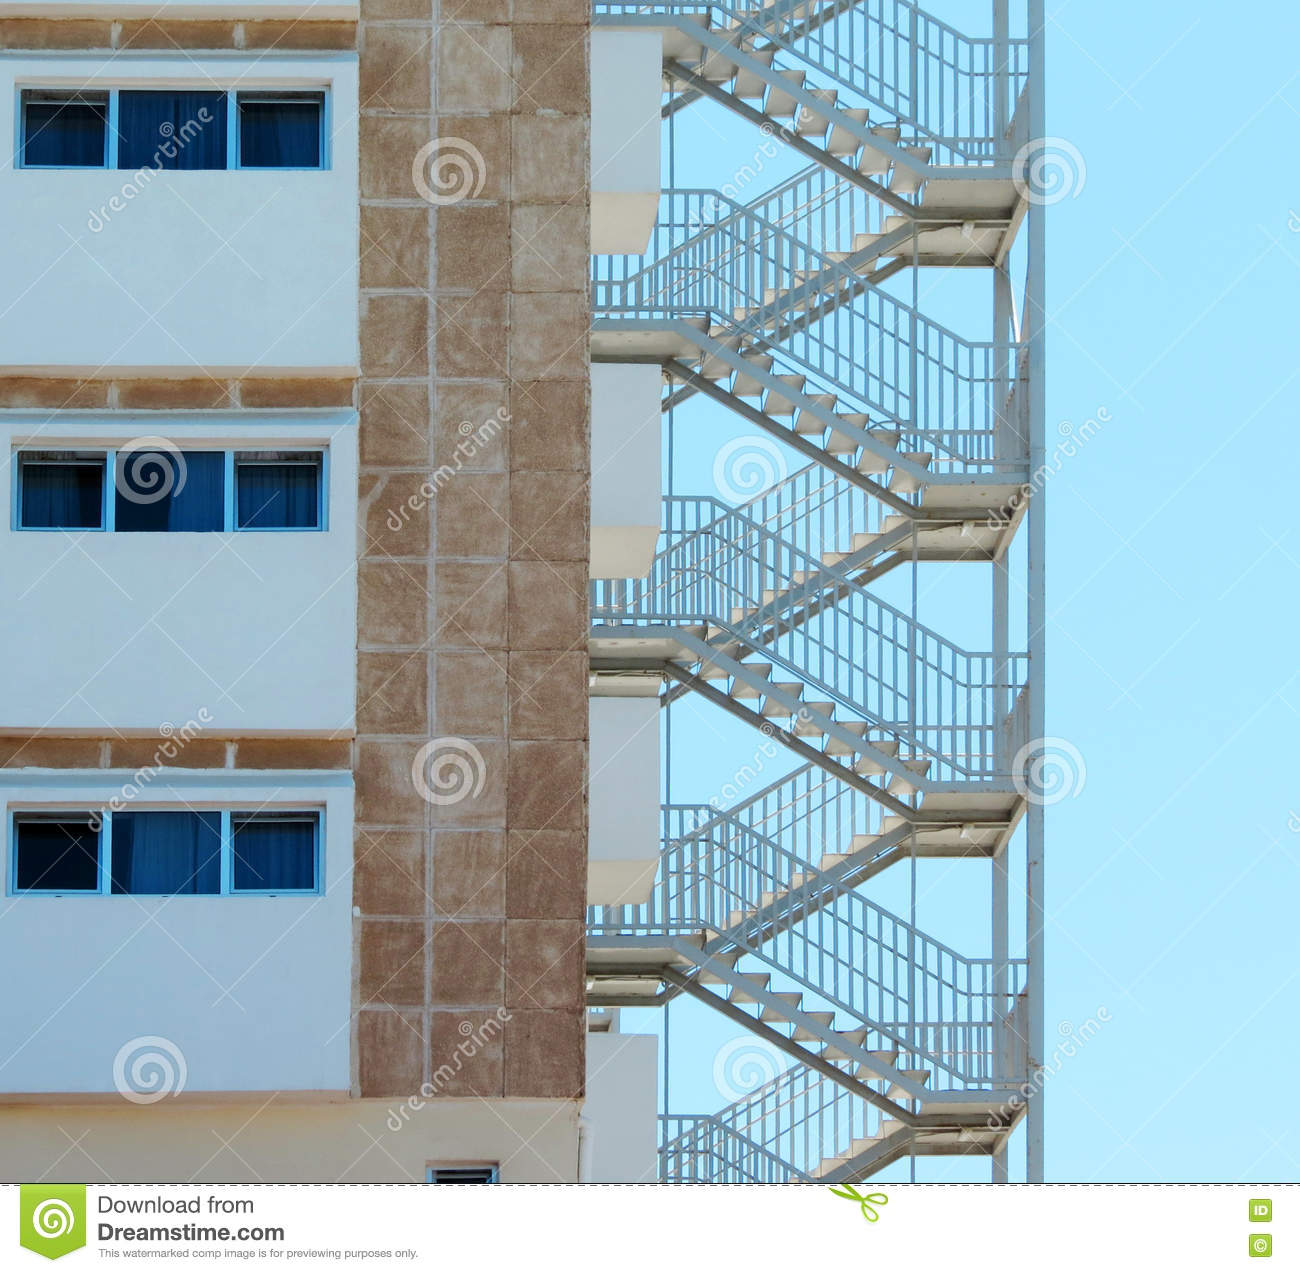 Download Fire Escape Stairs At A Hotel Stock Image   Image Of Stairs,  Modern: